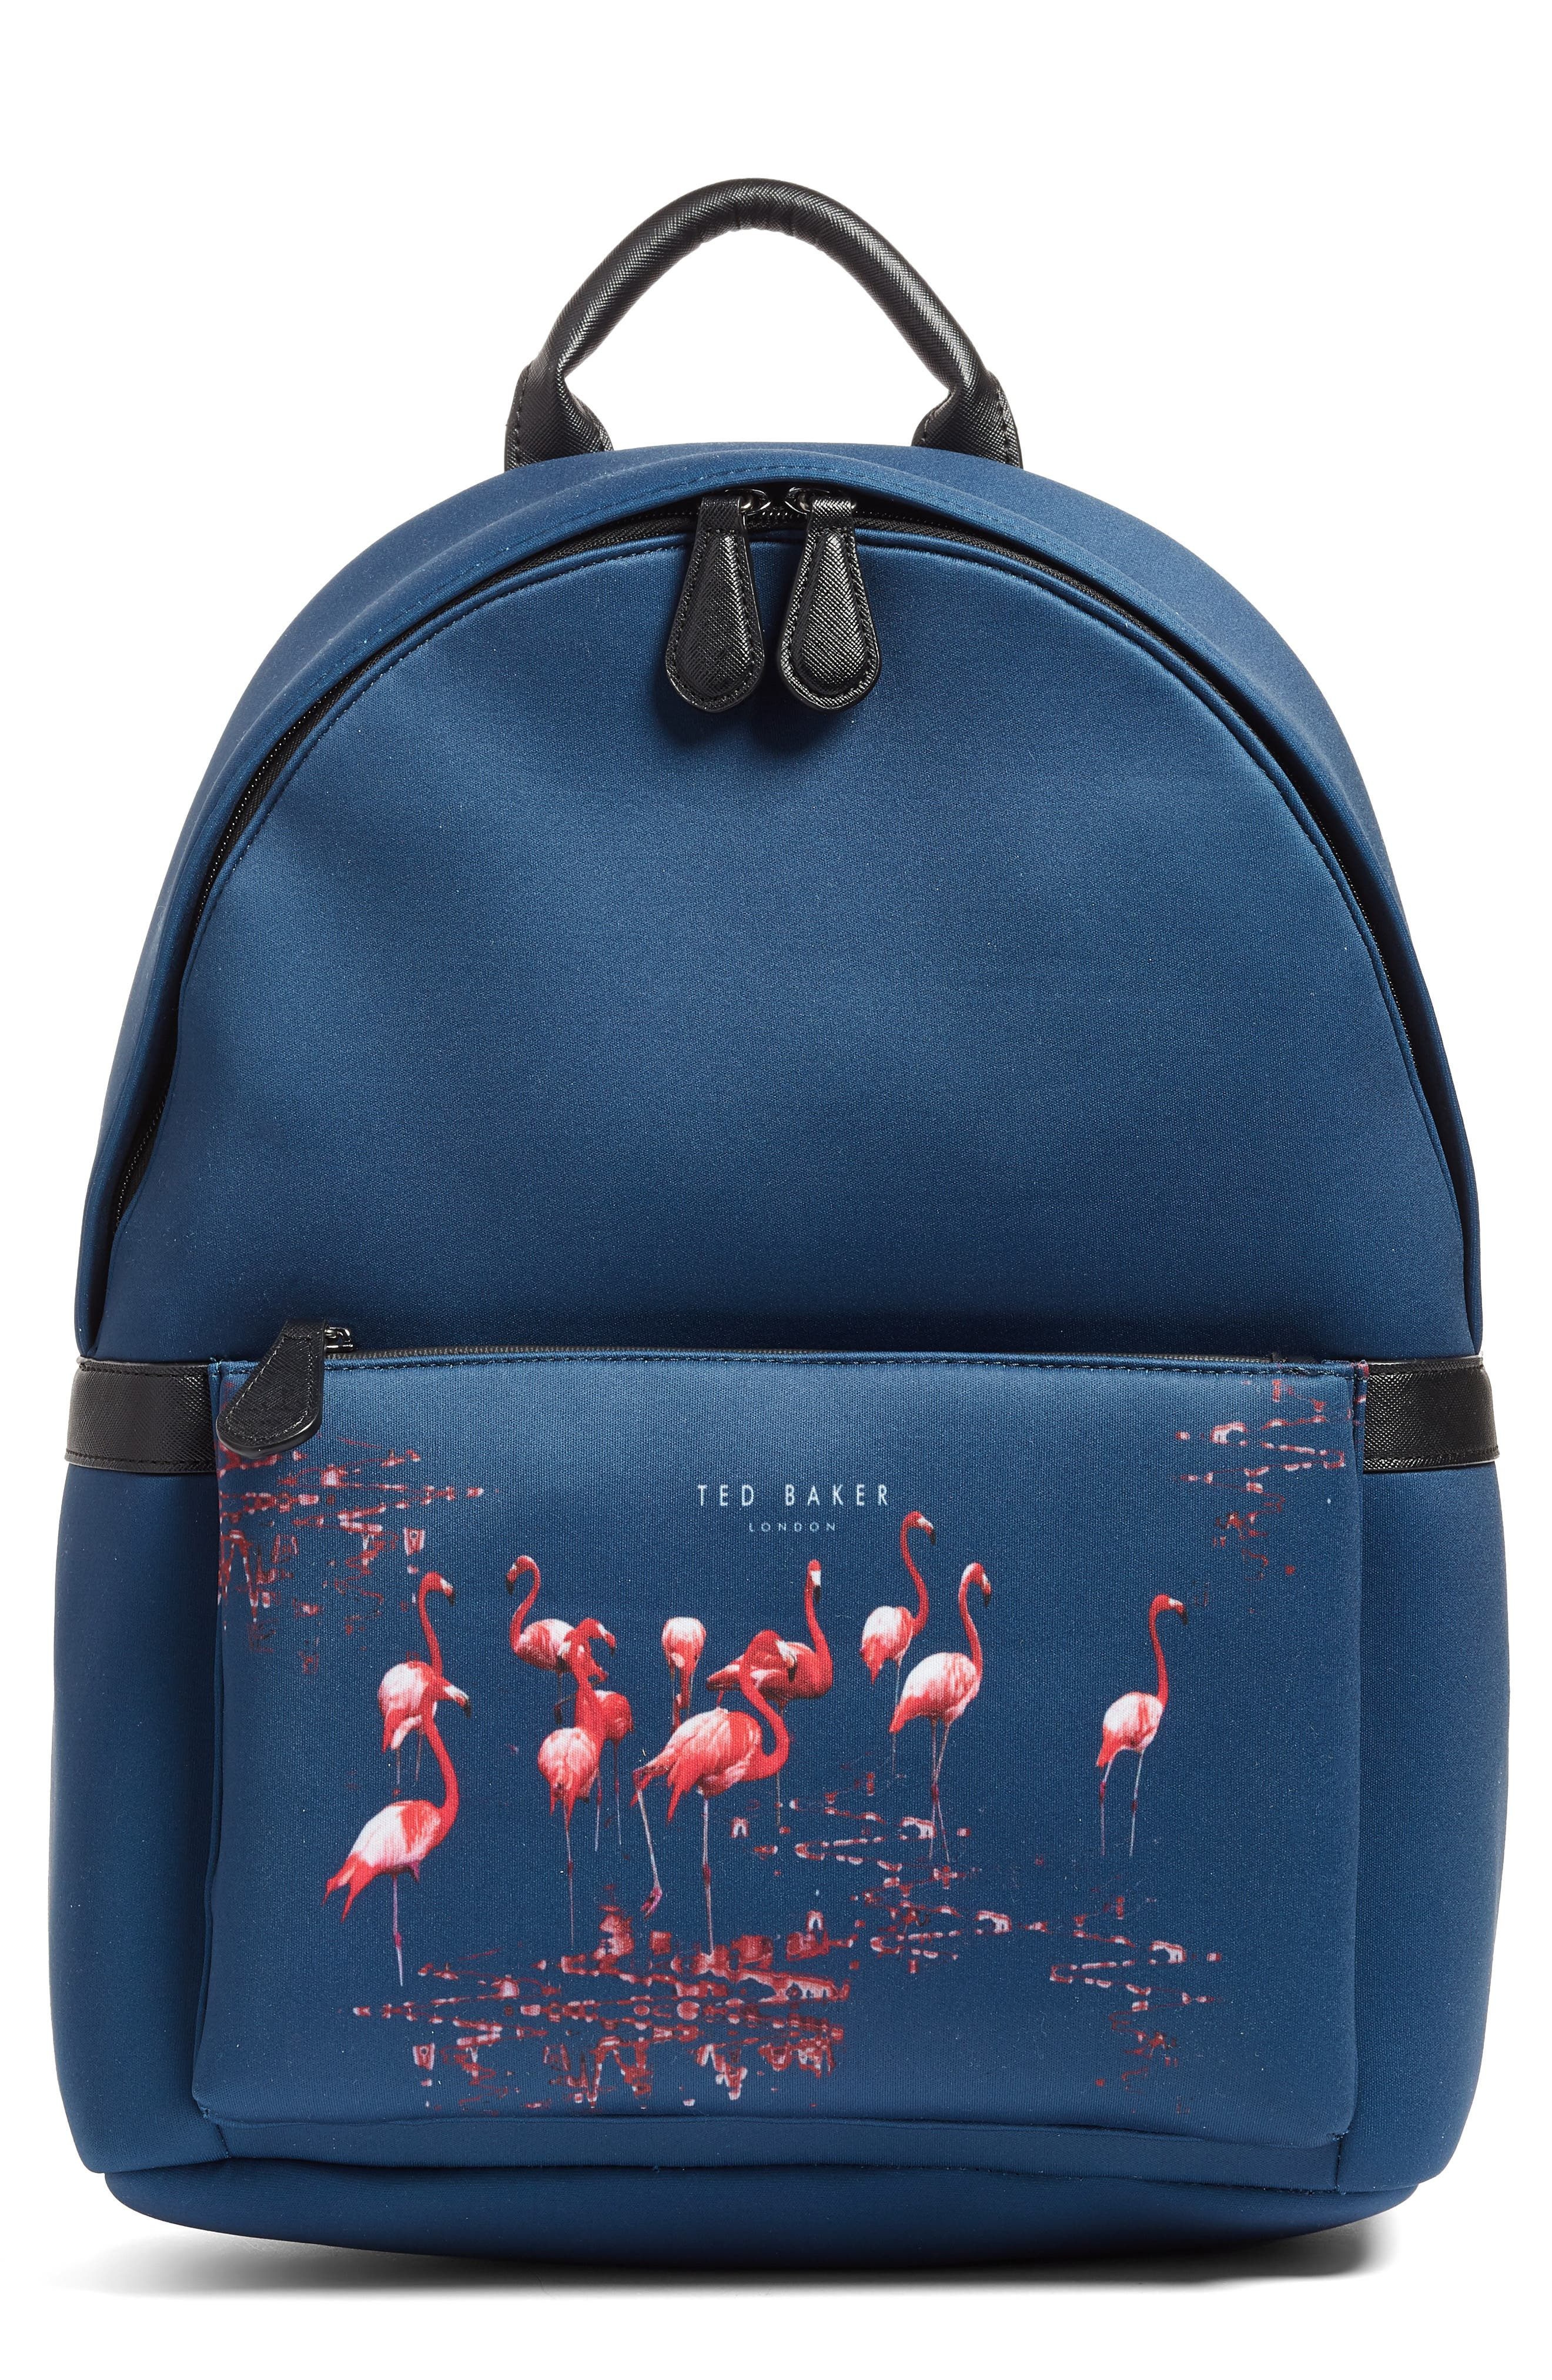 TED BAKER LONDON Print Backpack, Main, color, 410